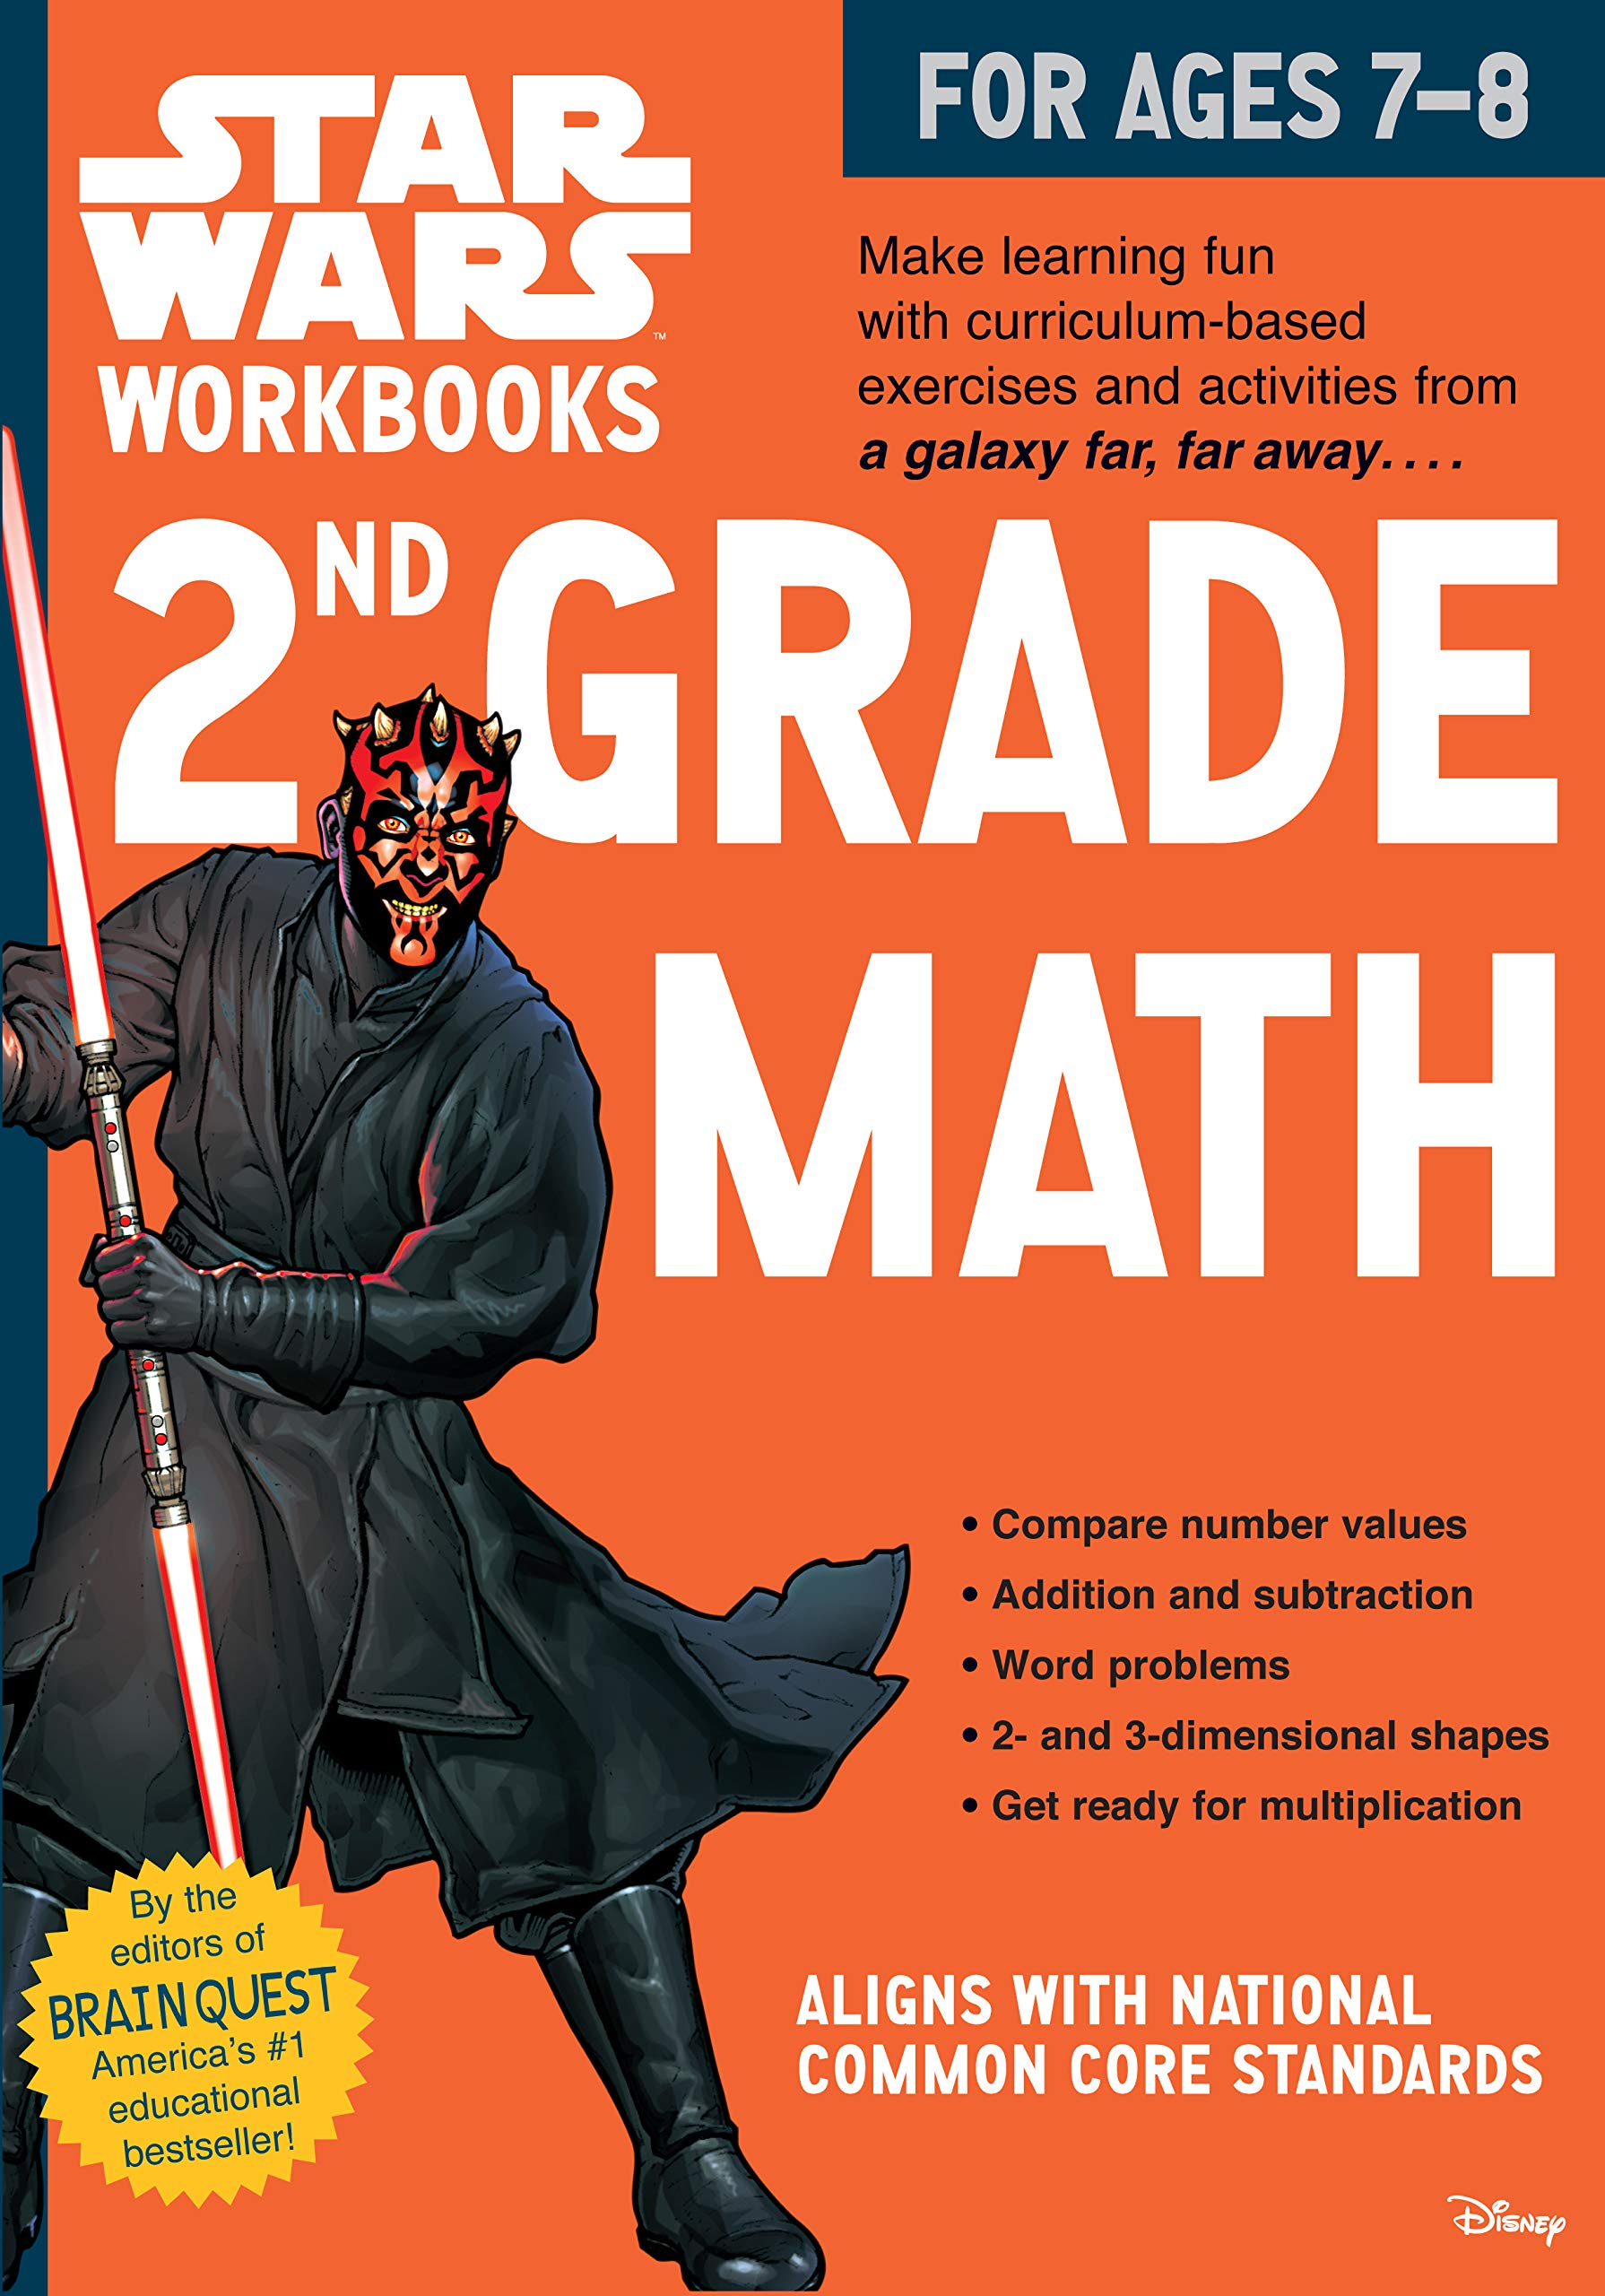 Star Wars Workbooks: 2nd Grade Math